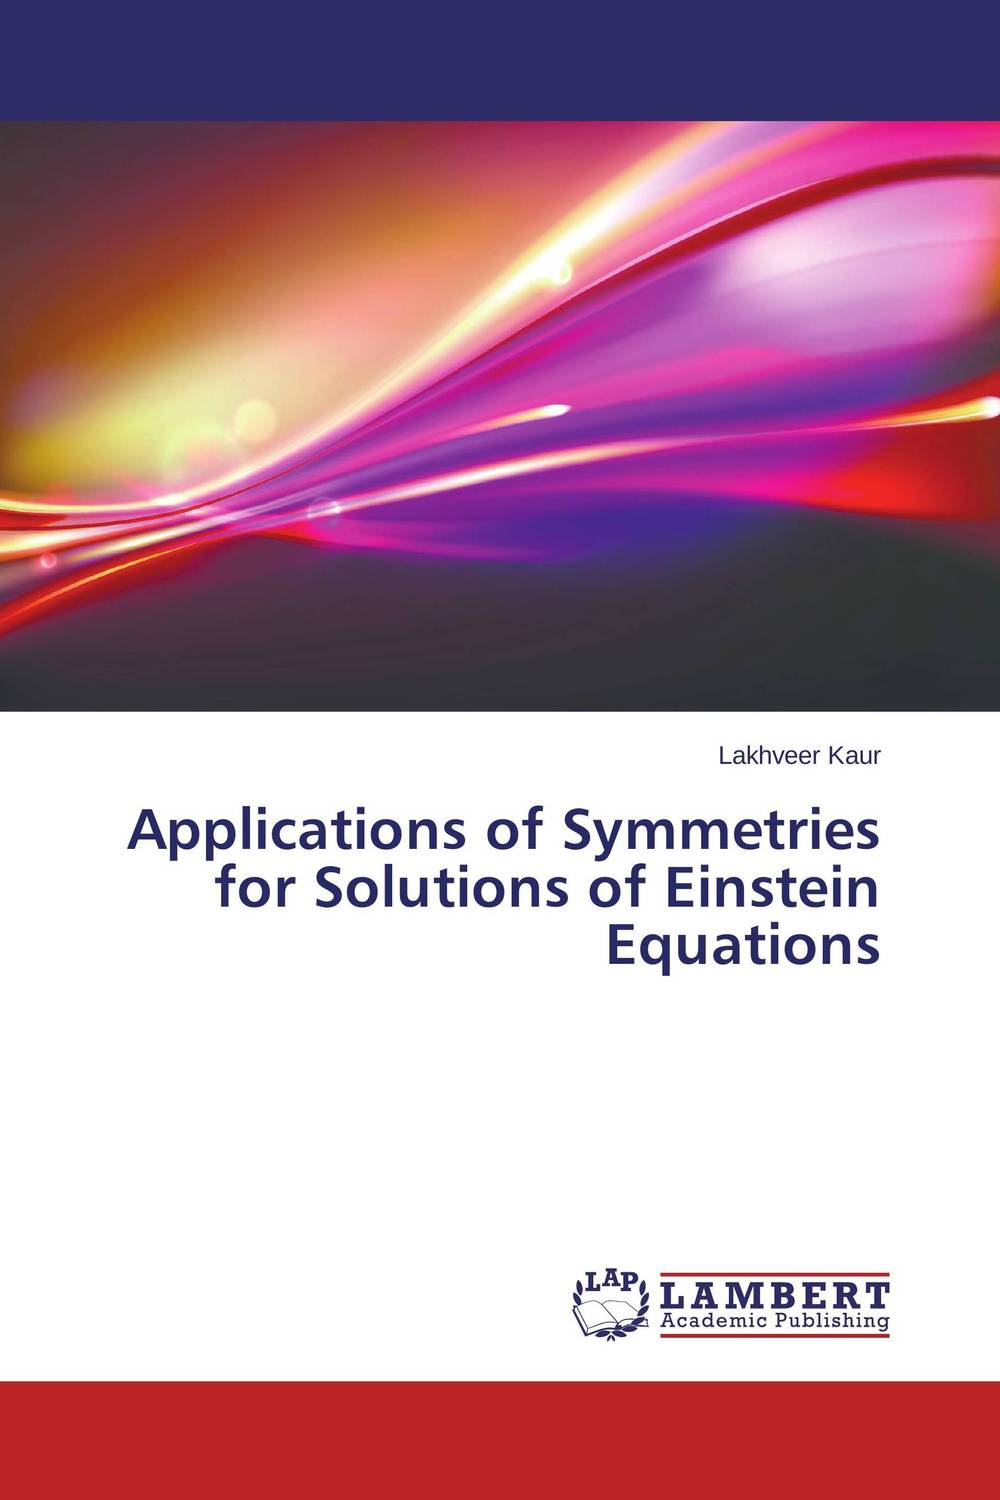 Applications of Symmetries for Solutions of Einstein Equations te0192 garner 2005 international year of physics einstein 5 new stamps 0405